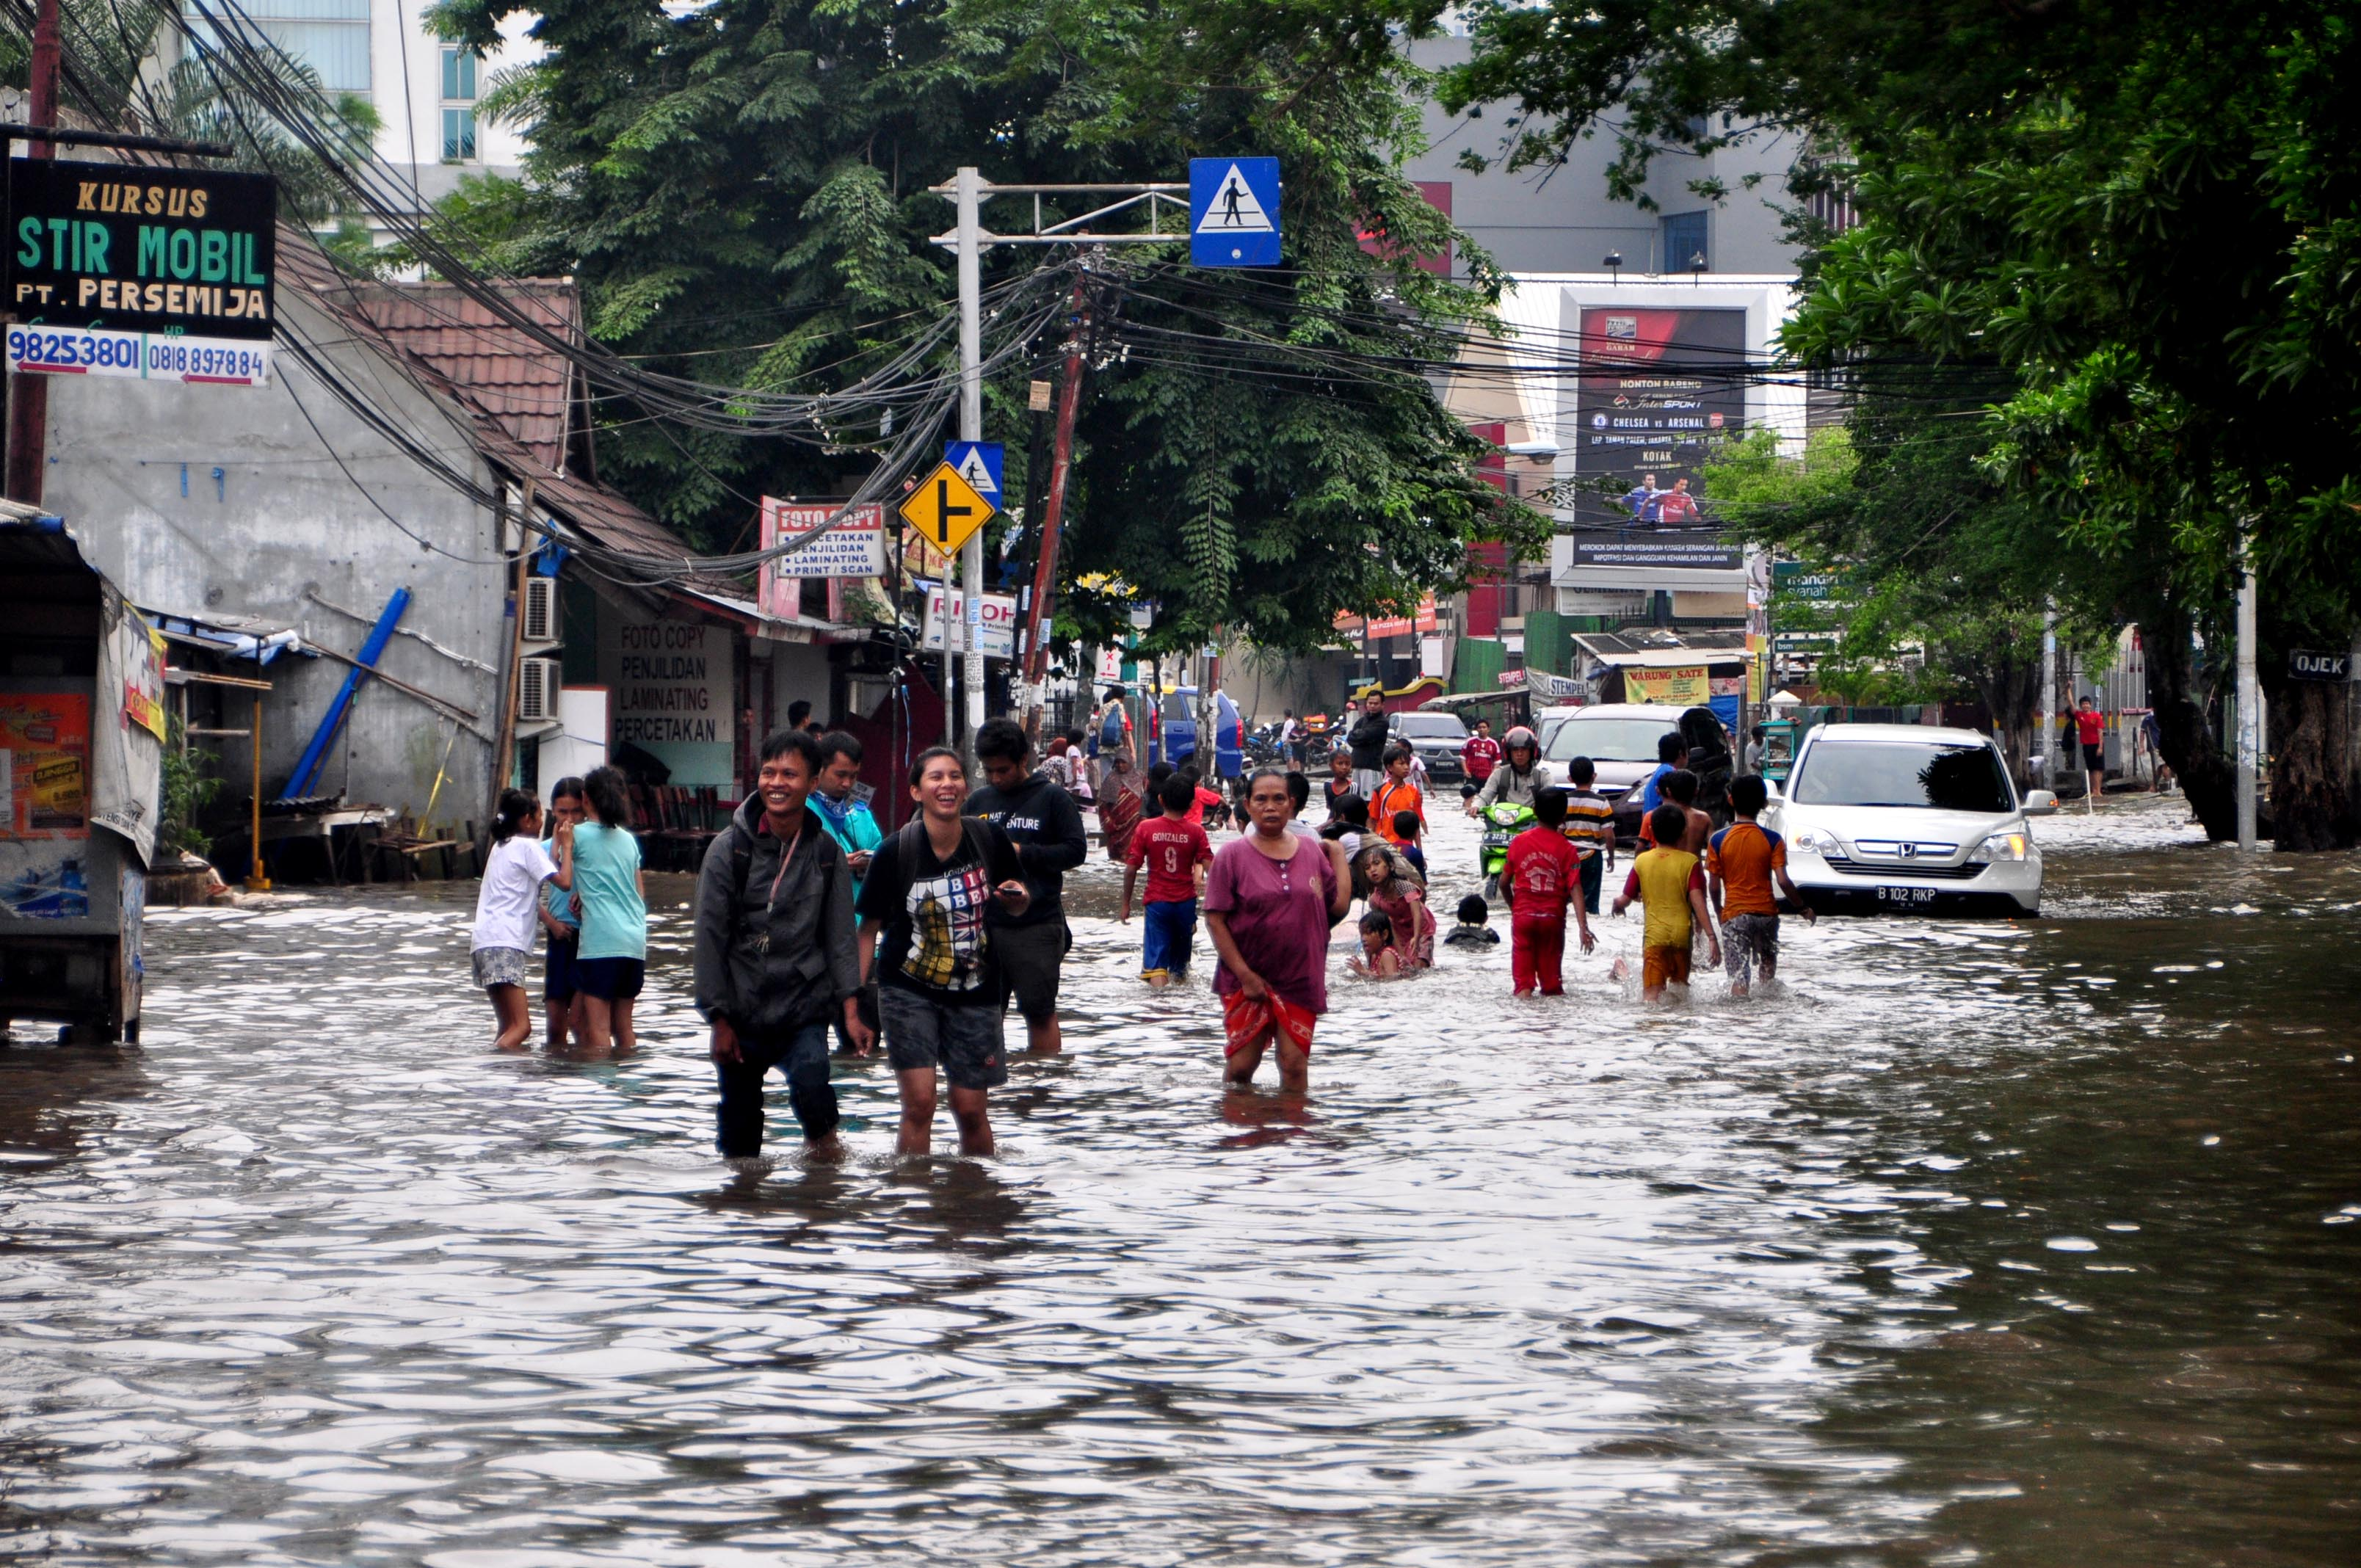 jakarta floods by samantha yap globalcitizensam the floods turned the streets of bendungan hilir into rivers